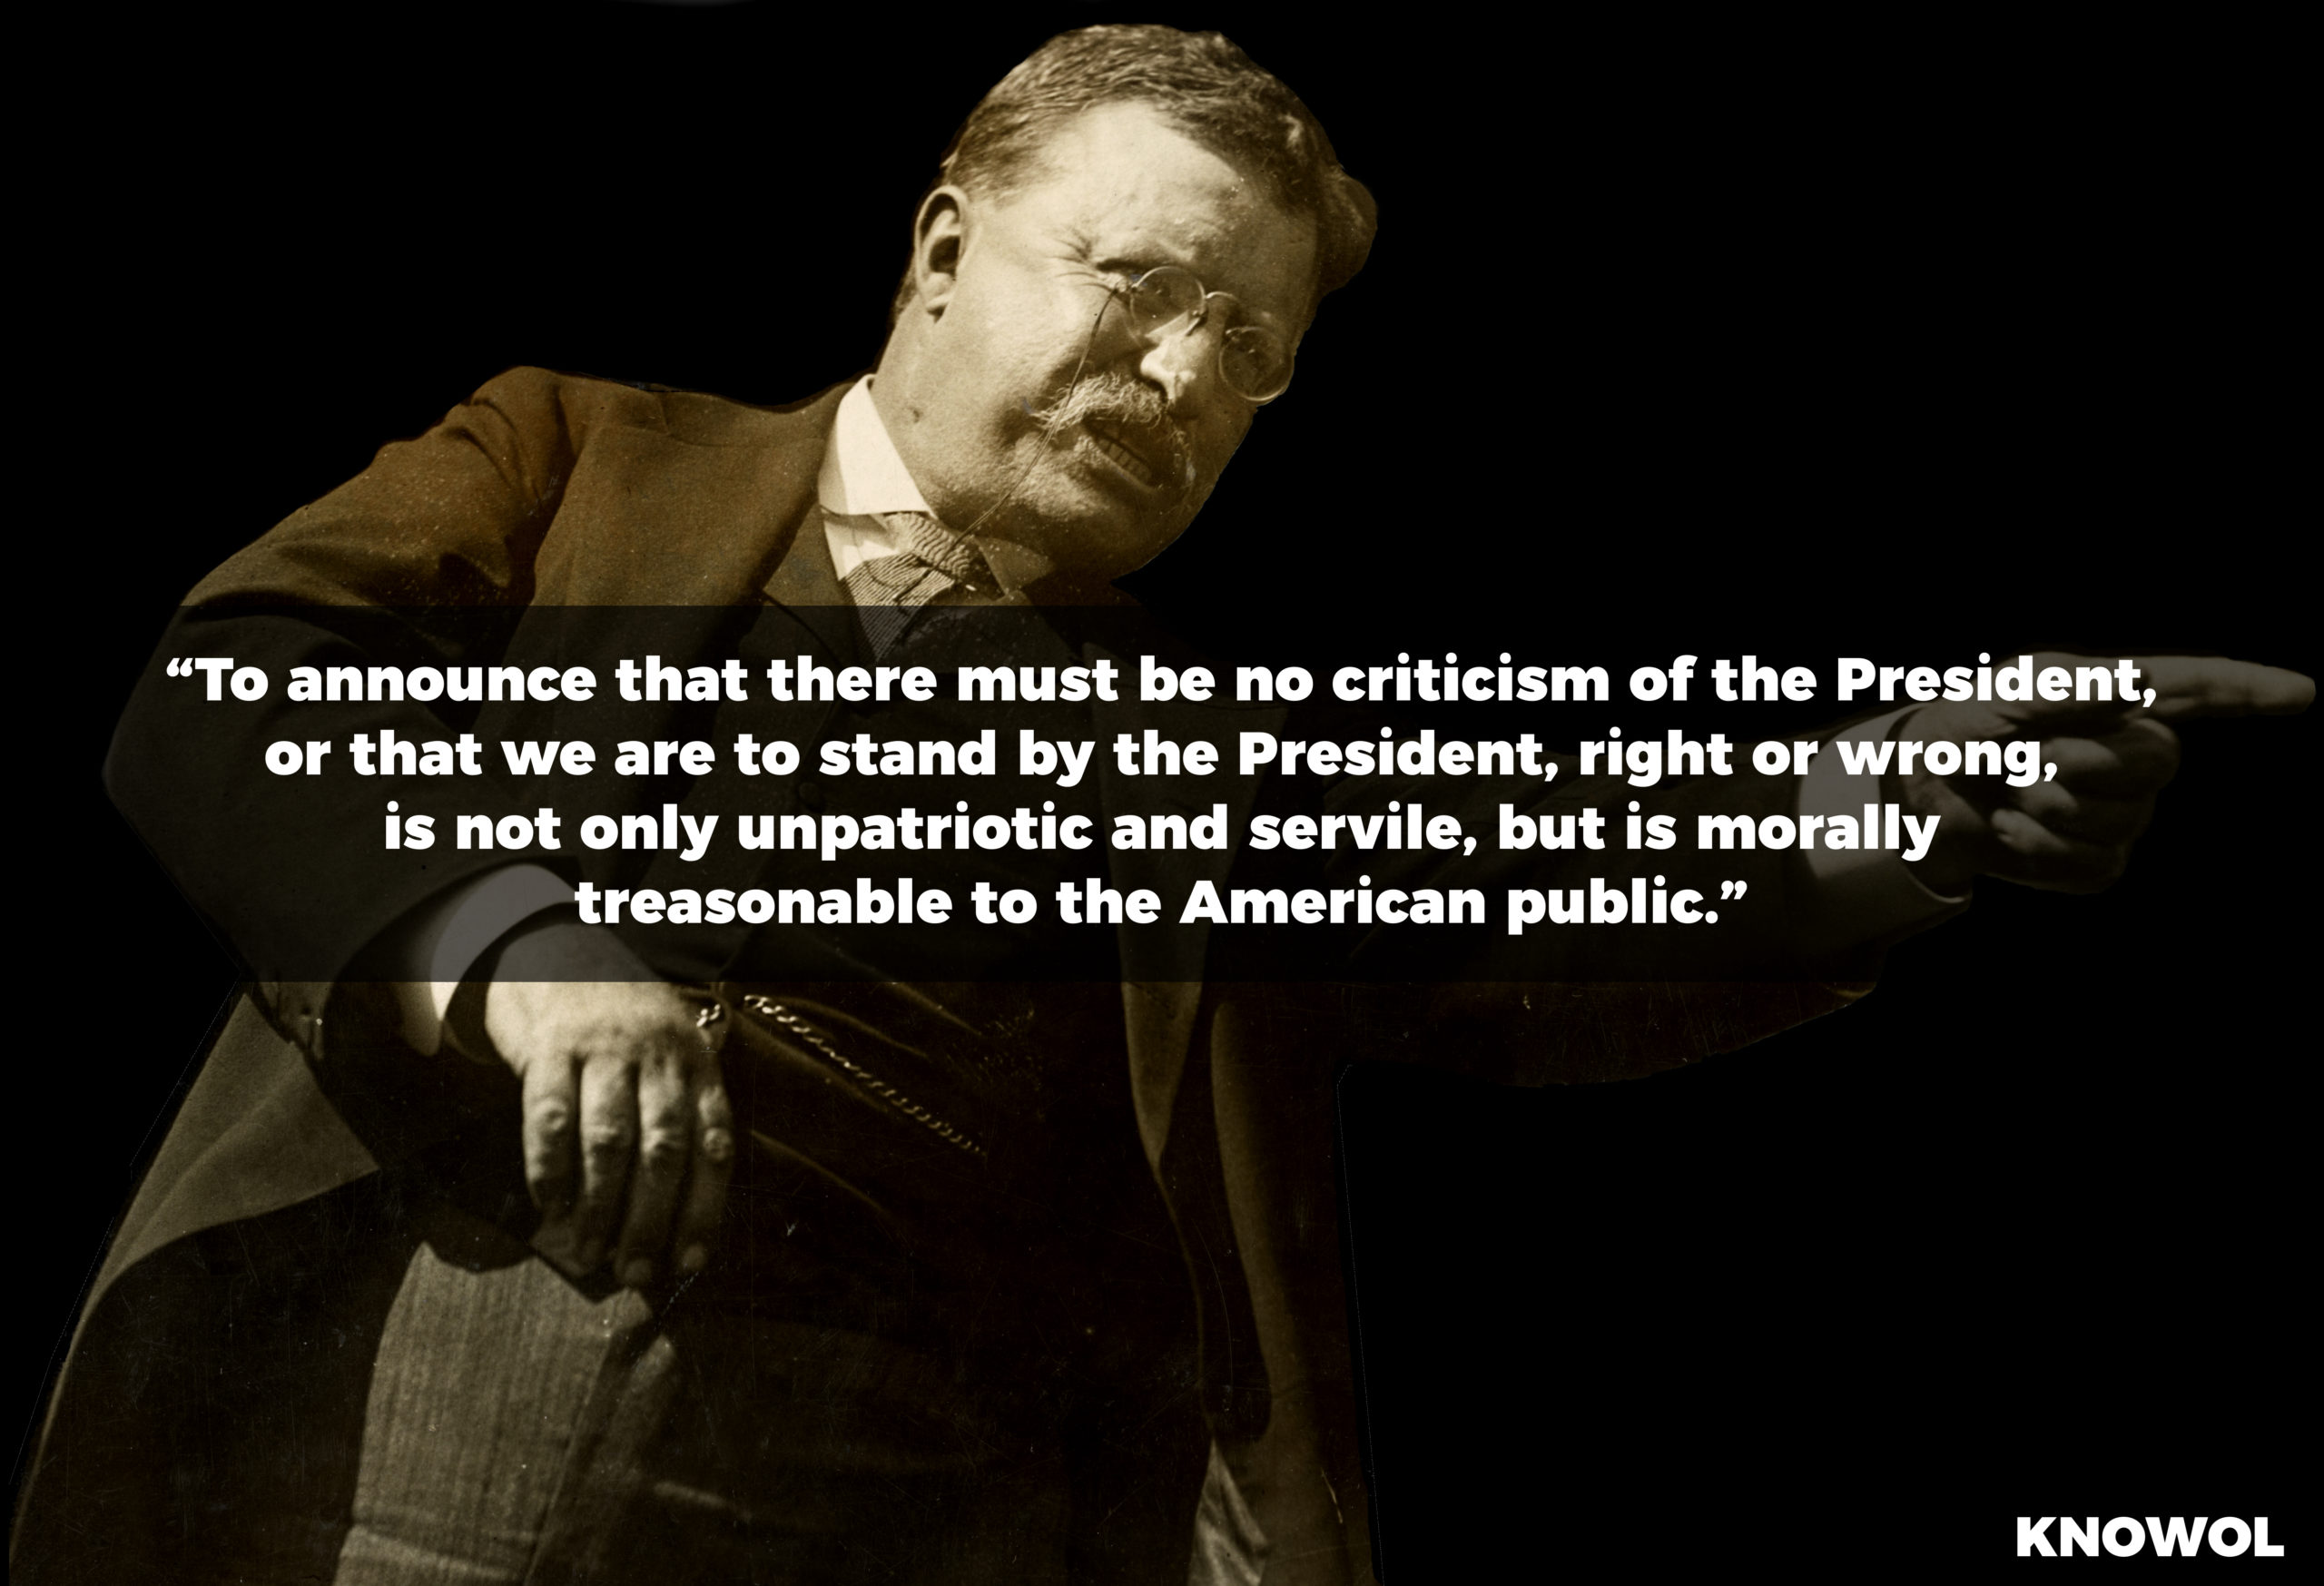 Theodore Roosevelt Quotes Beauteous Theodore Roosevelt Discusses Criticism Of The President  Knowol